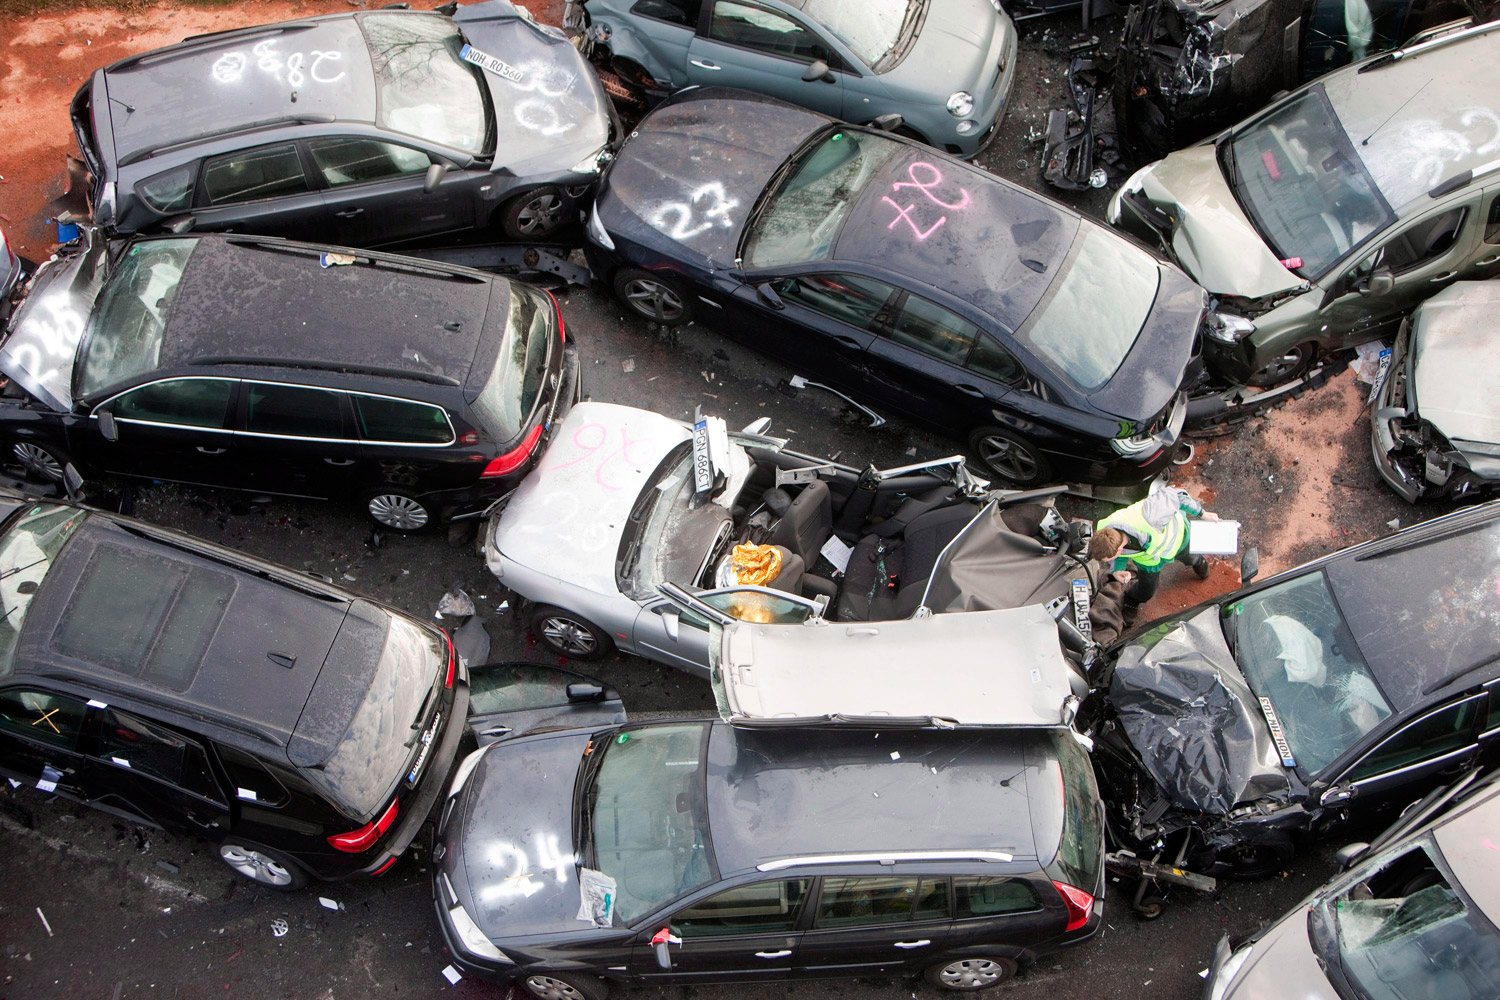 November 19, 2011. A general view of the aftermath of a car pile up that took place overnight on the A31 motorway between Heek and Gronau-Ochtrup in Germany. One woman and two men died in a 52-car pileup in foggy conditions late on an expressway in northern Germany. The accident left 35 people injured, including 14 in serious condition.